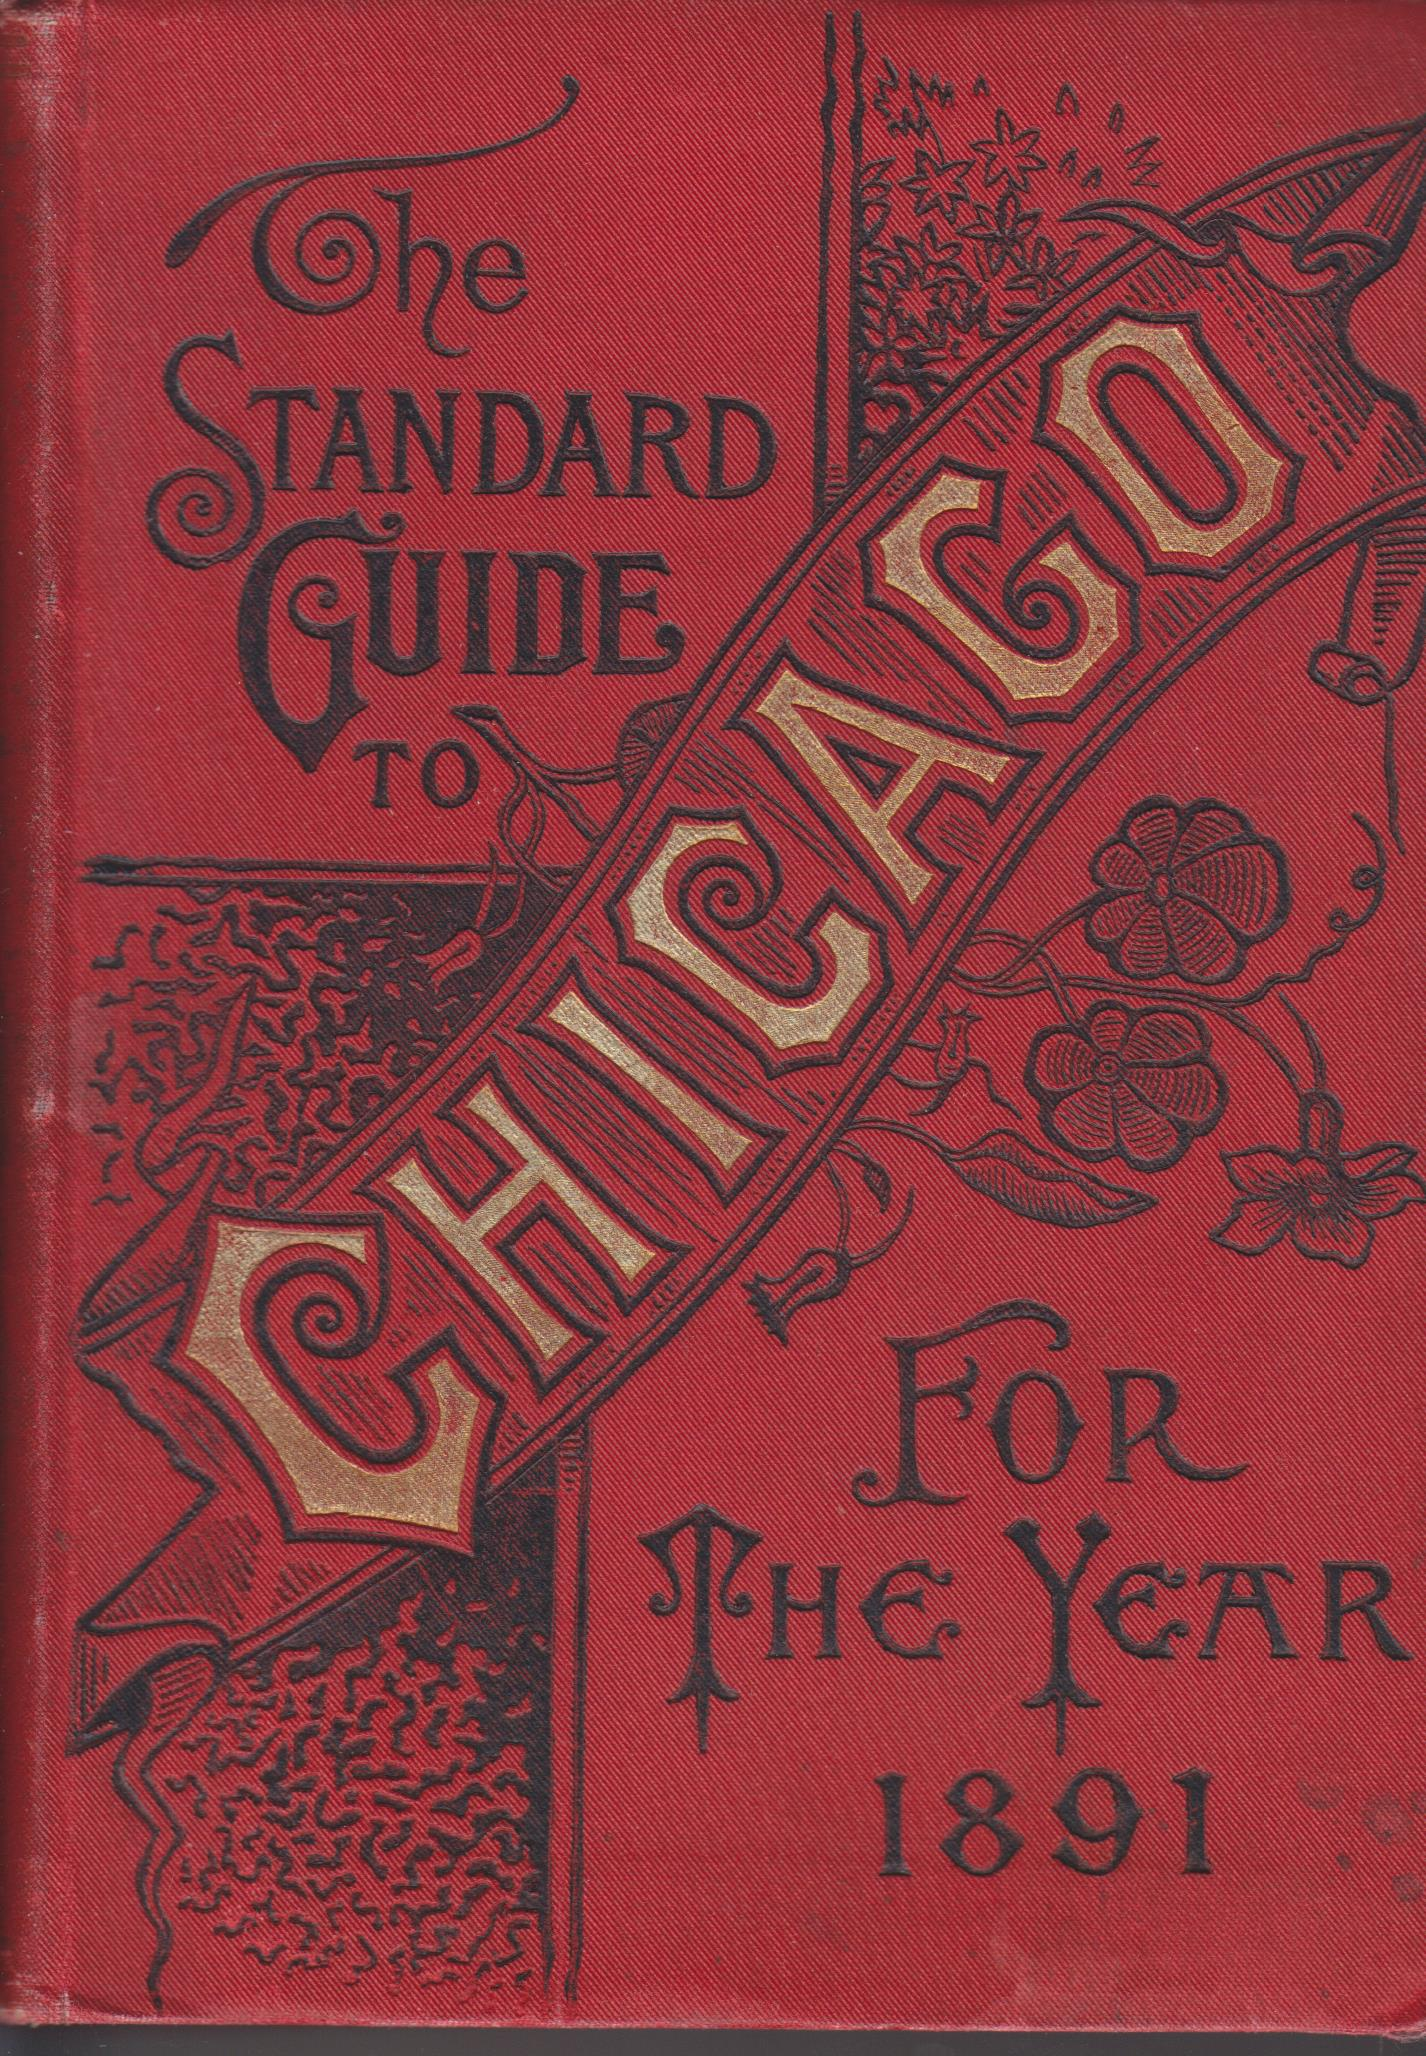 Image for Chicago The Marvelous City of the West, A History, an Encyclopedia and Guide, 1891